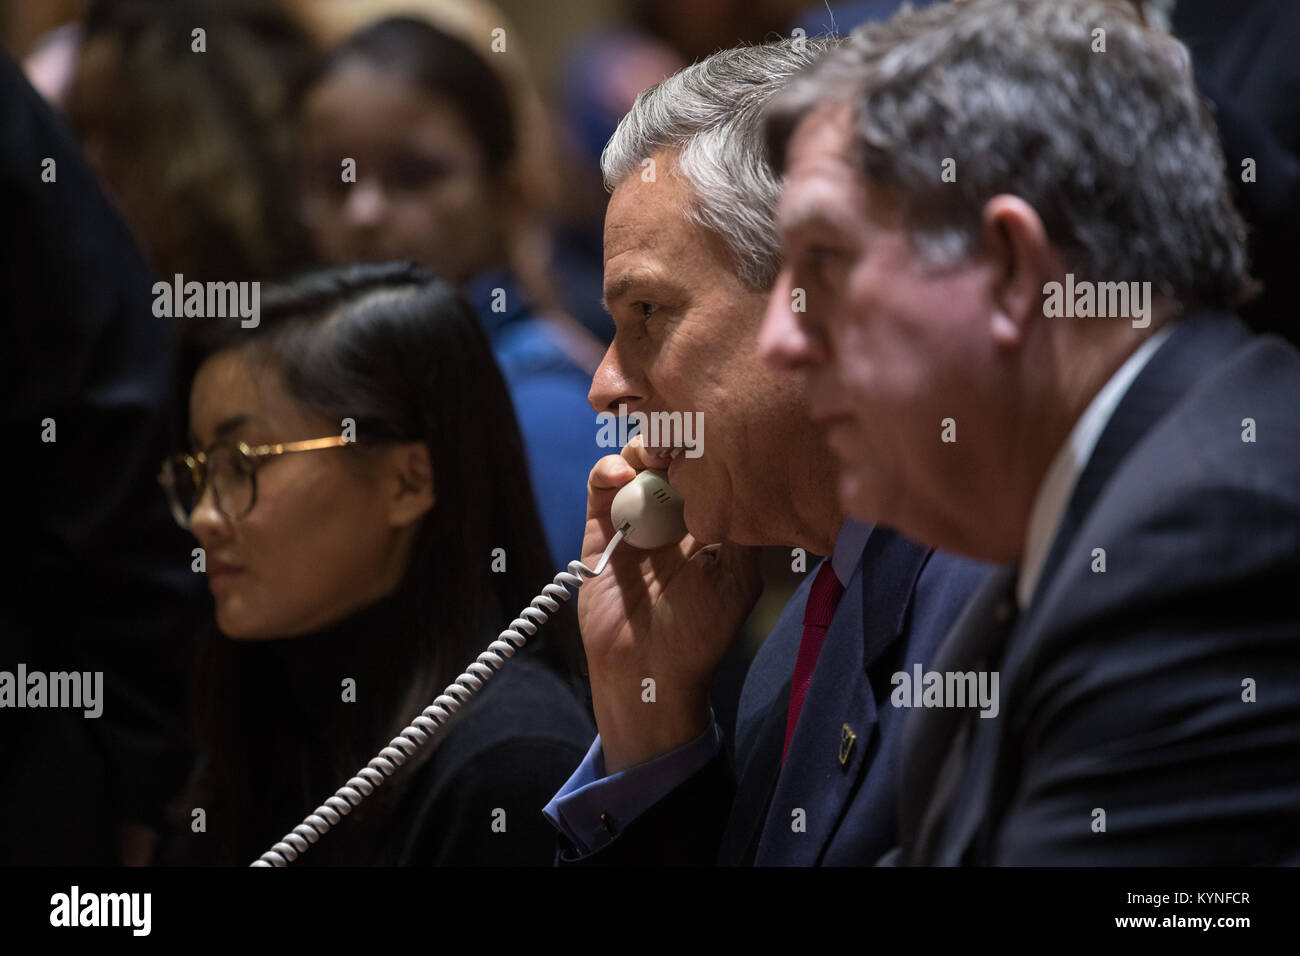 U.S. Ambassador to Russia Jon Huntsman Jr. speaks with the Soyuz MS-07 crew from the Moscow Mission Control Center - Stock Image